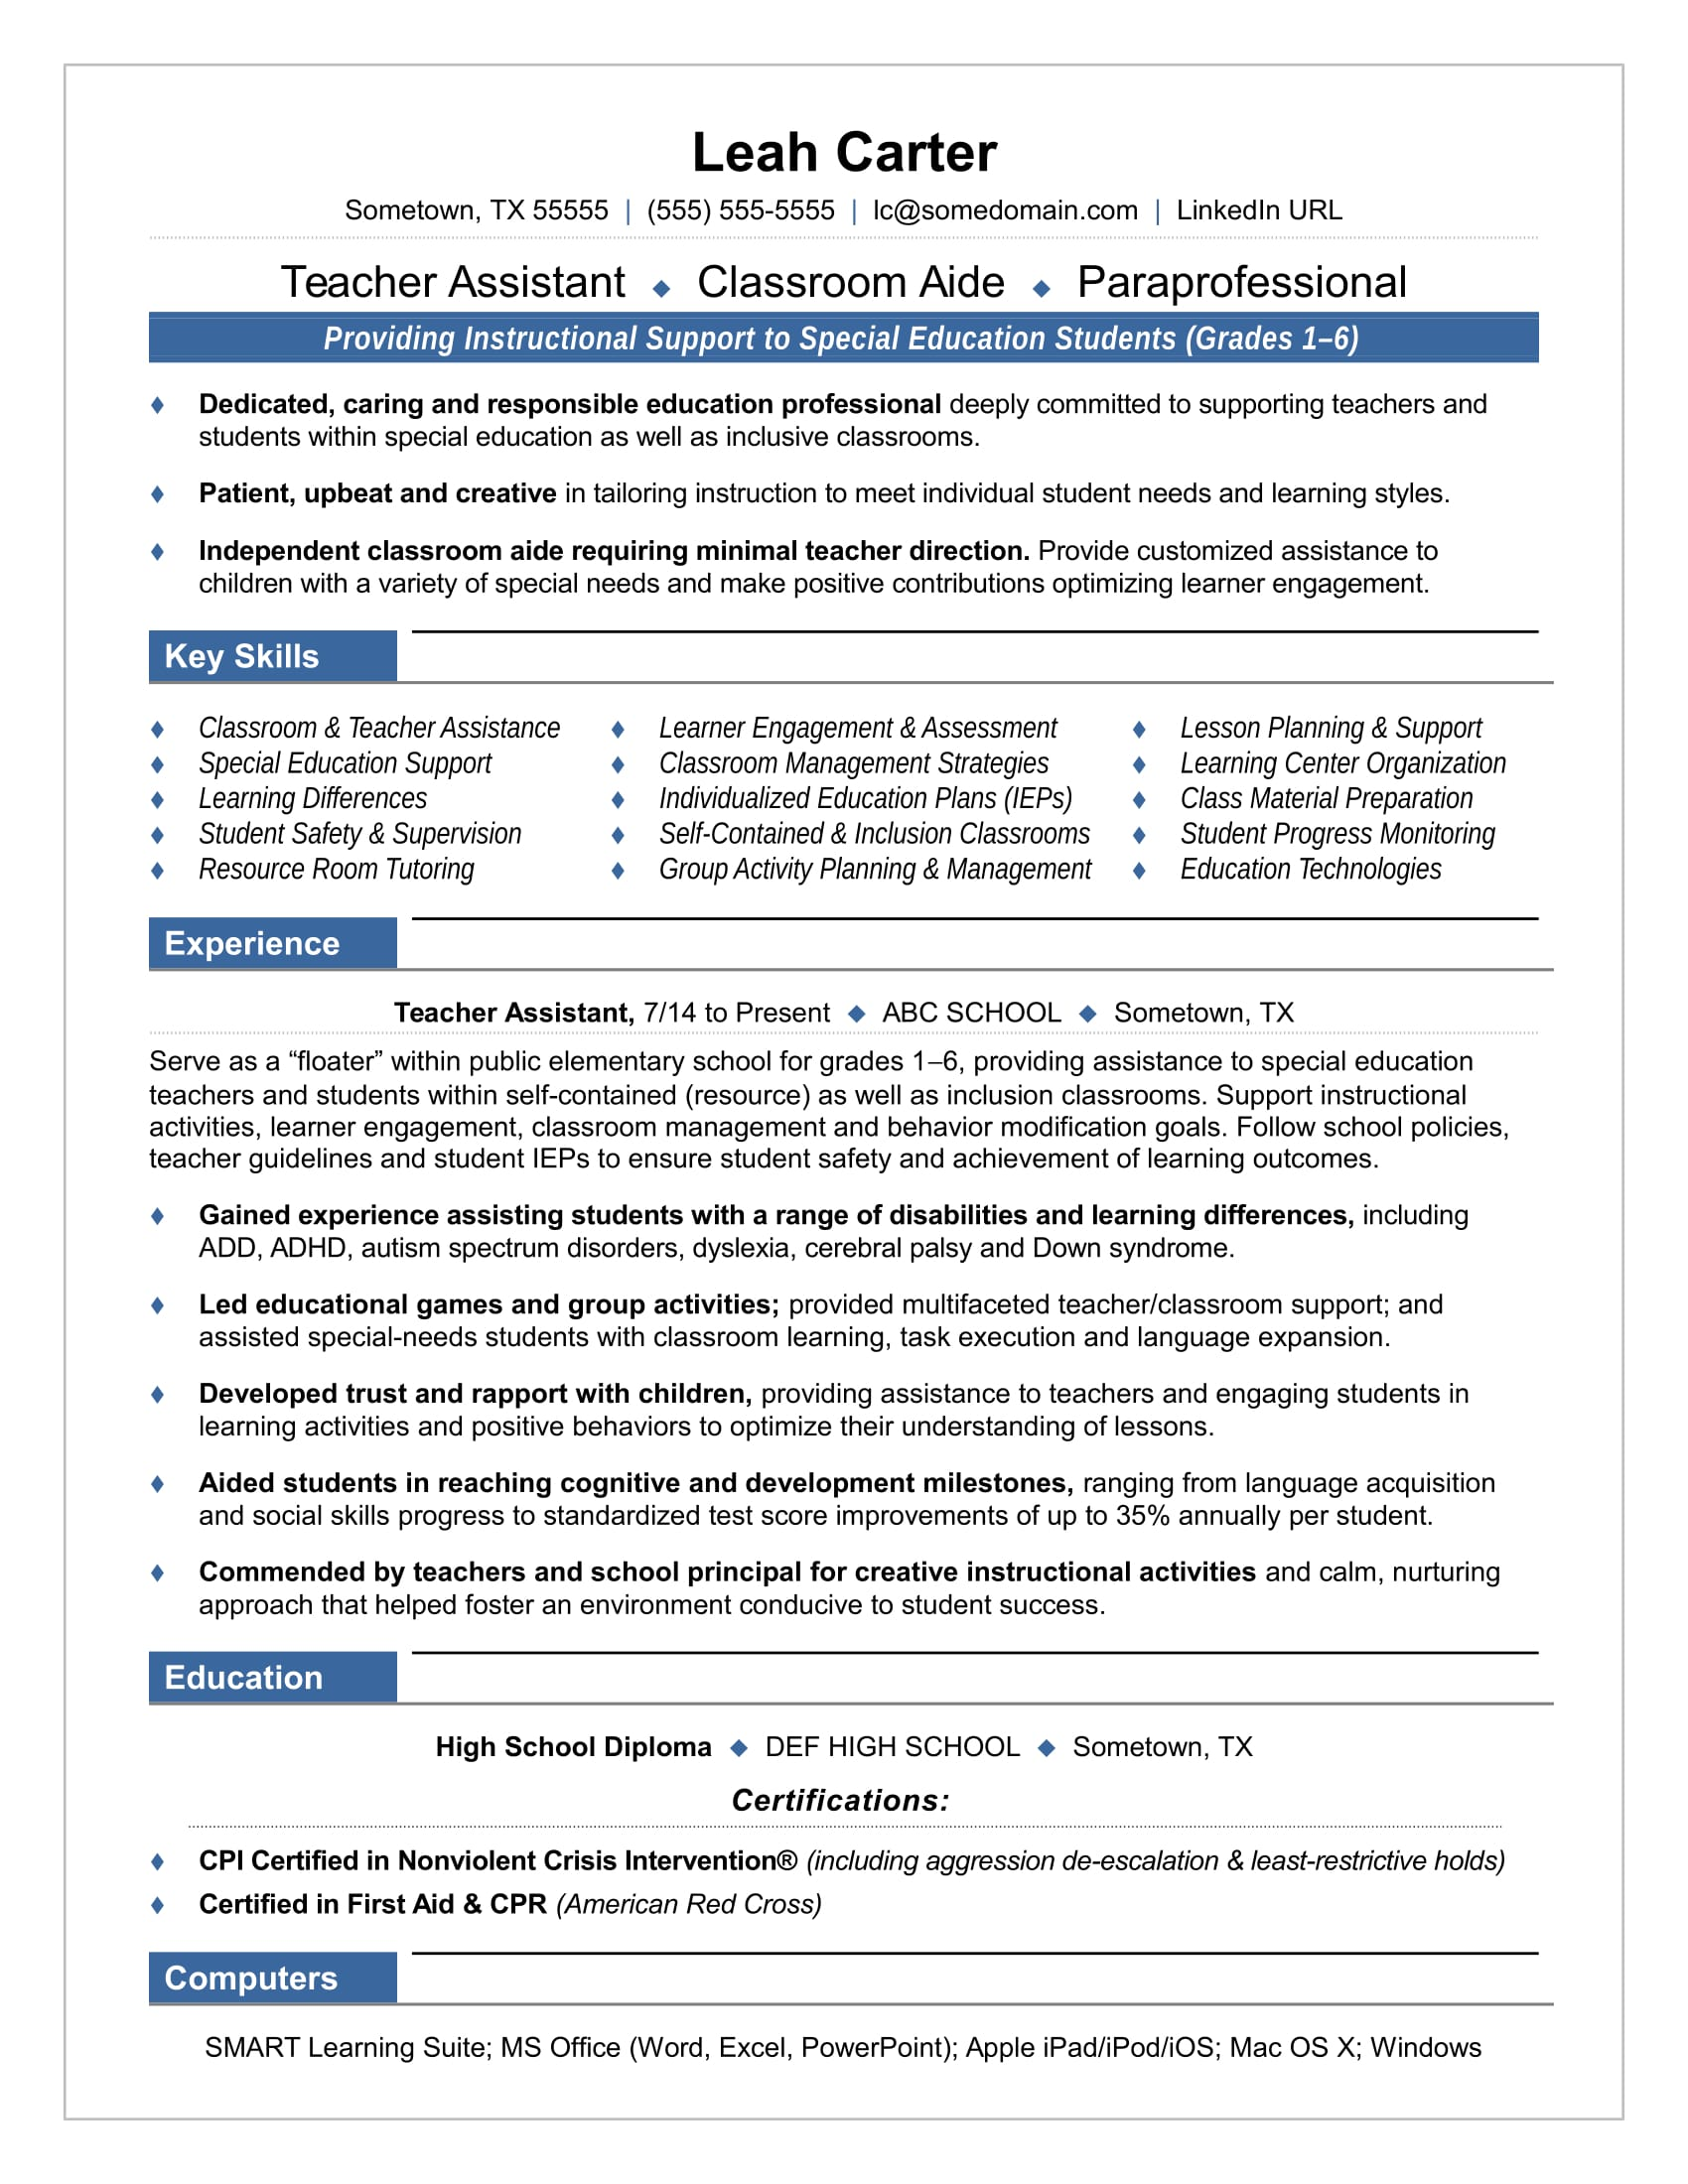 Teacher Assistant Resume Sample  Resume Template Education